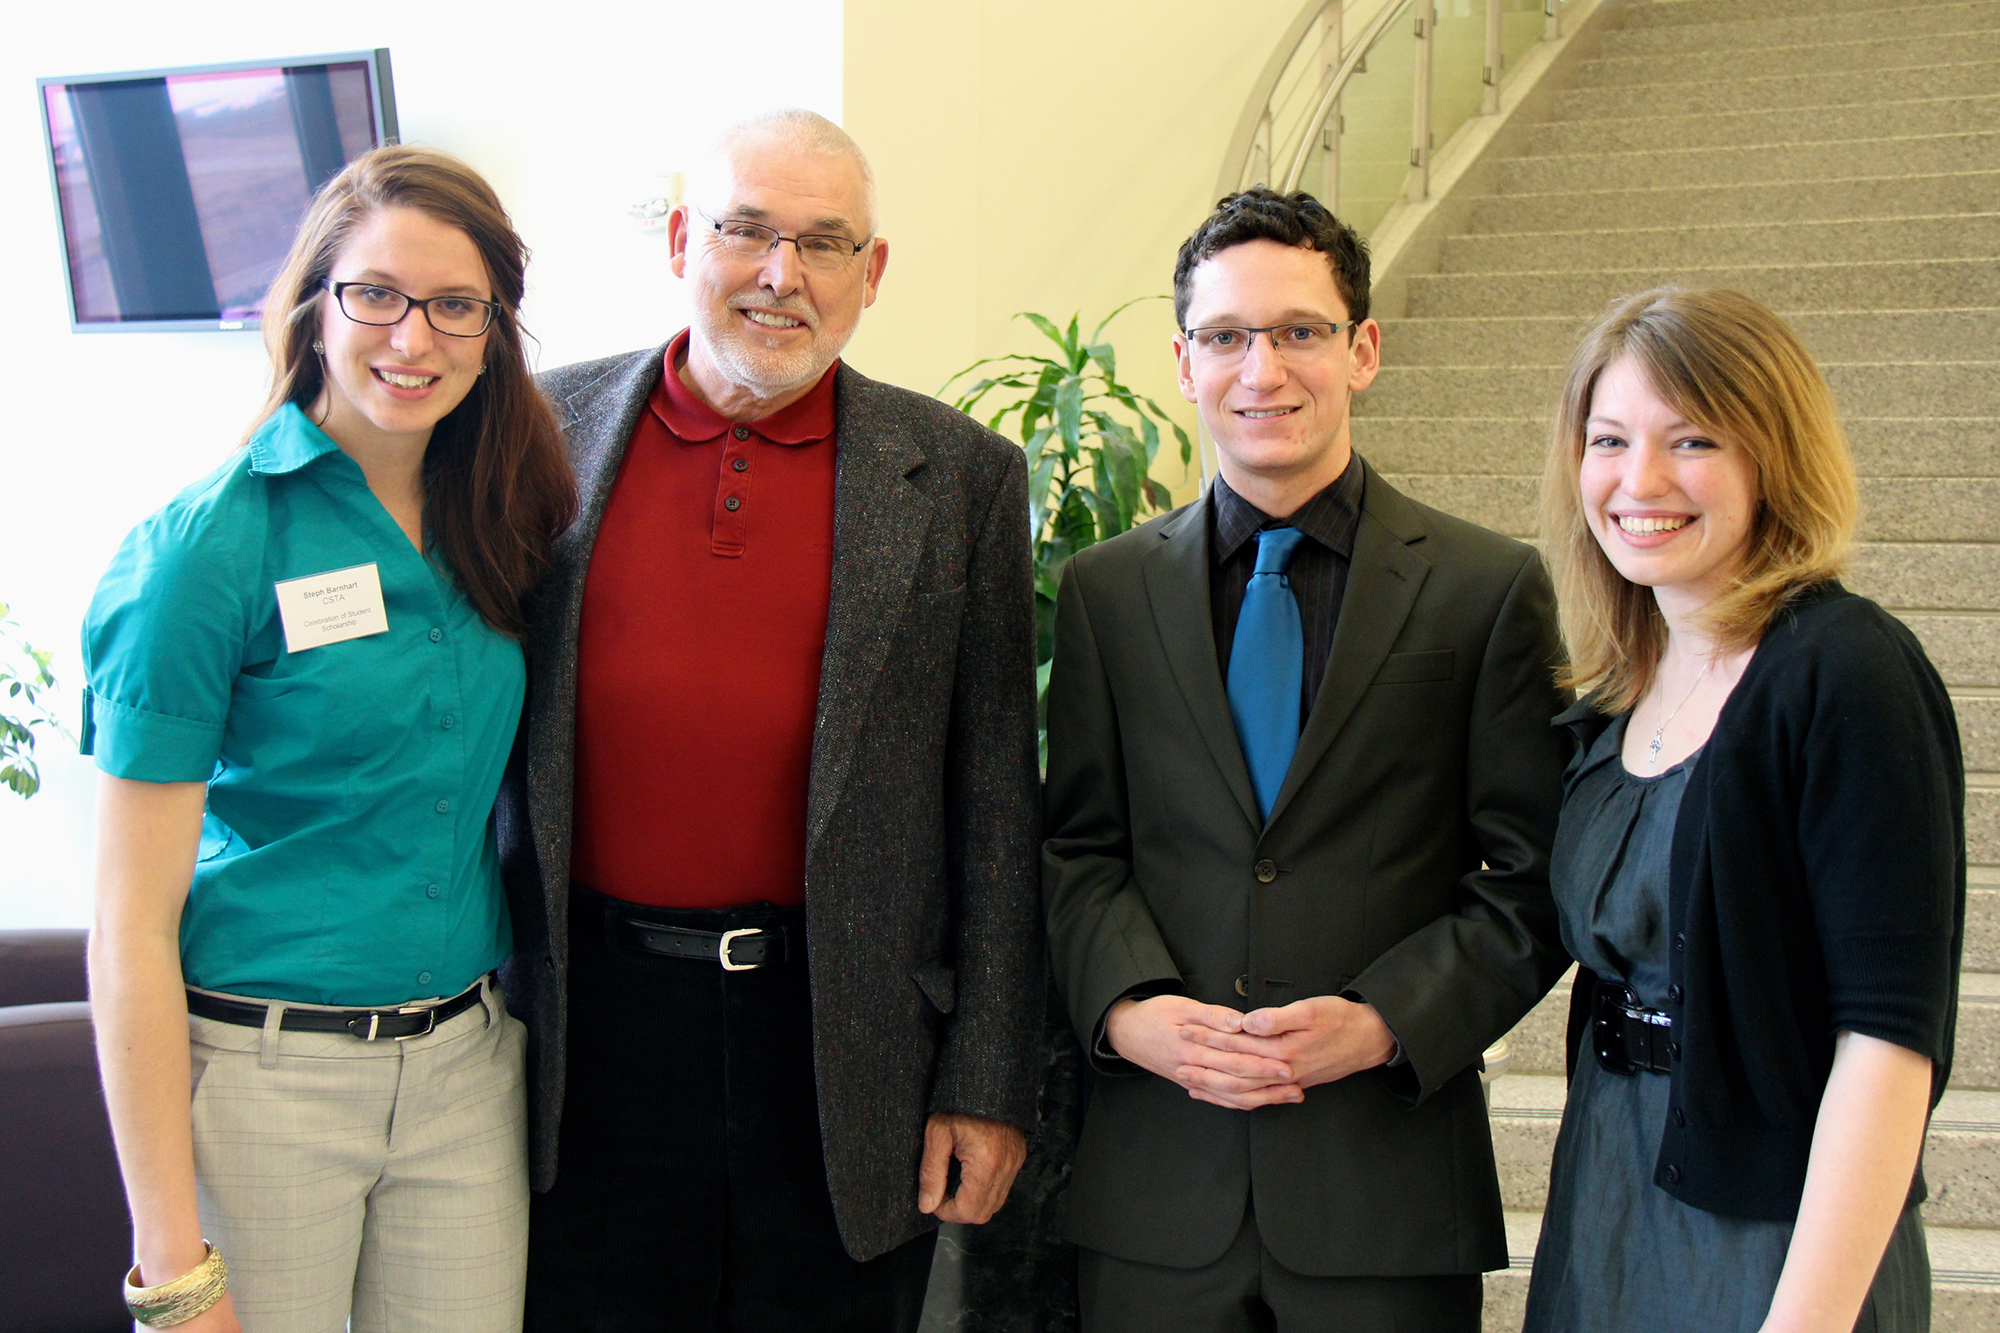 Photo by Gia Rassier. Mike Doyle returned to campus to recognize the third recipient of the President Pamela M. Jolicoeur Endowed Memorial Scholarship, Katharine Spencer (right) at the Celebration of Student Scholarhip. Also pictured: Steph Barnhart and Matthew Gantz, past winners of the award.